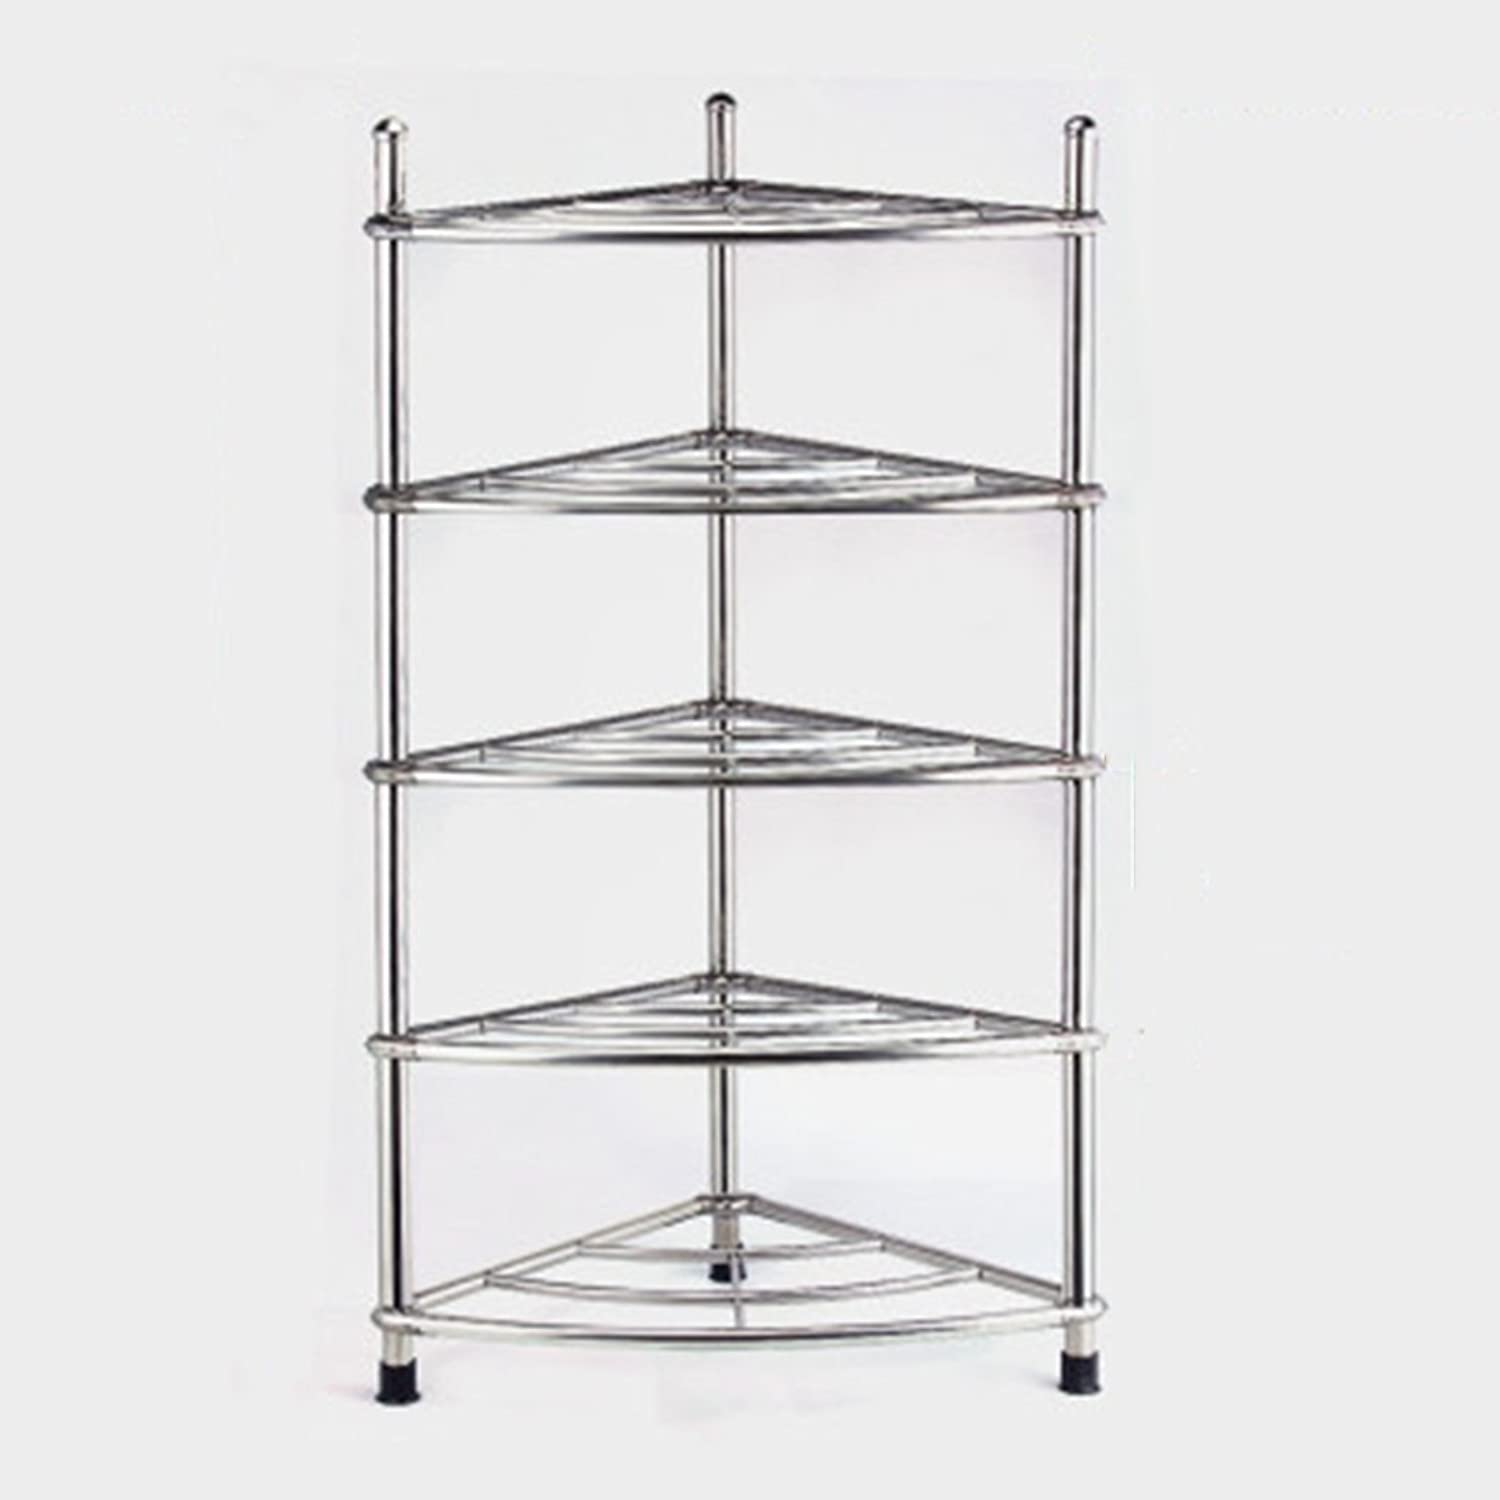 Cpp Shelf Multilayer Stainless Steel washbasin Rack Tripod Kitchen Bathroom Floor Rack (color   39  90cm)